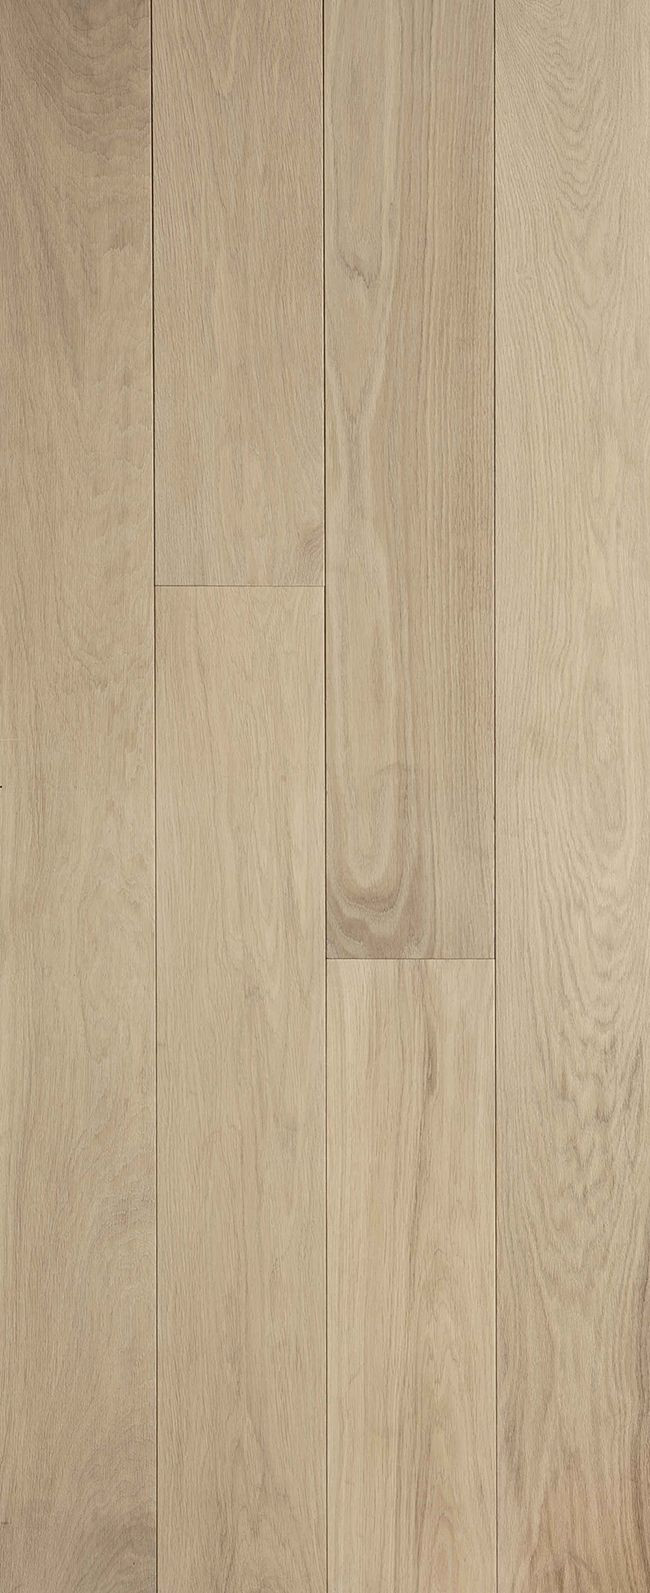 hardwood flooring regina of 222 best cٴaeۤ images on pinterest rugs carpet design and texture with regard to light wooden floors in the entry stairway toilet lobby and staff rooms reminds me of the beach with links to the coastal conservation work the trust does